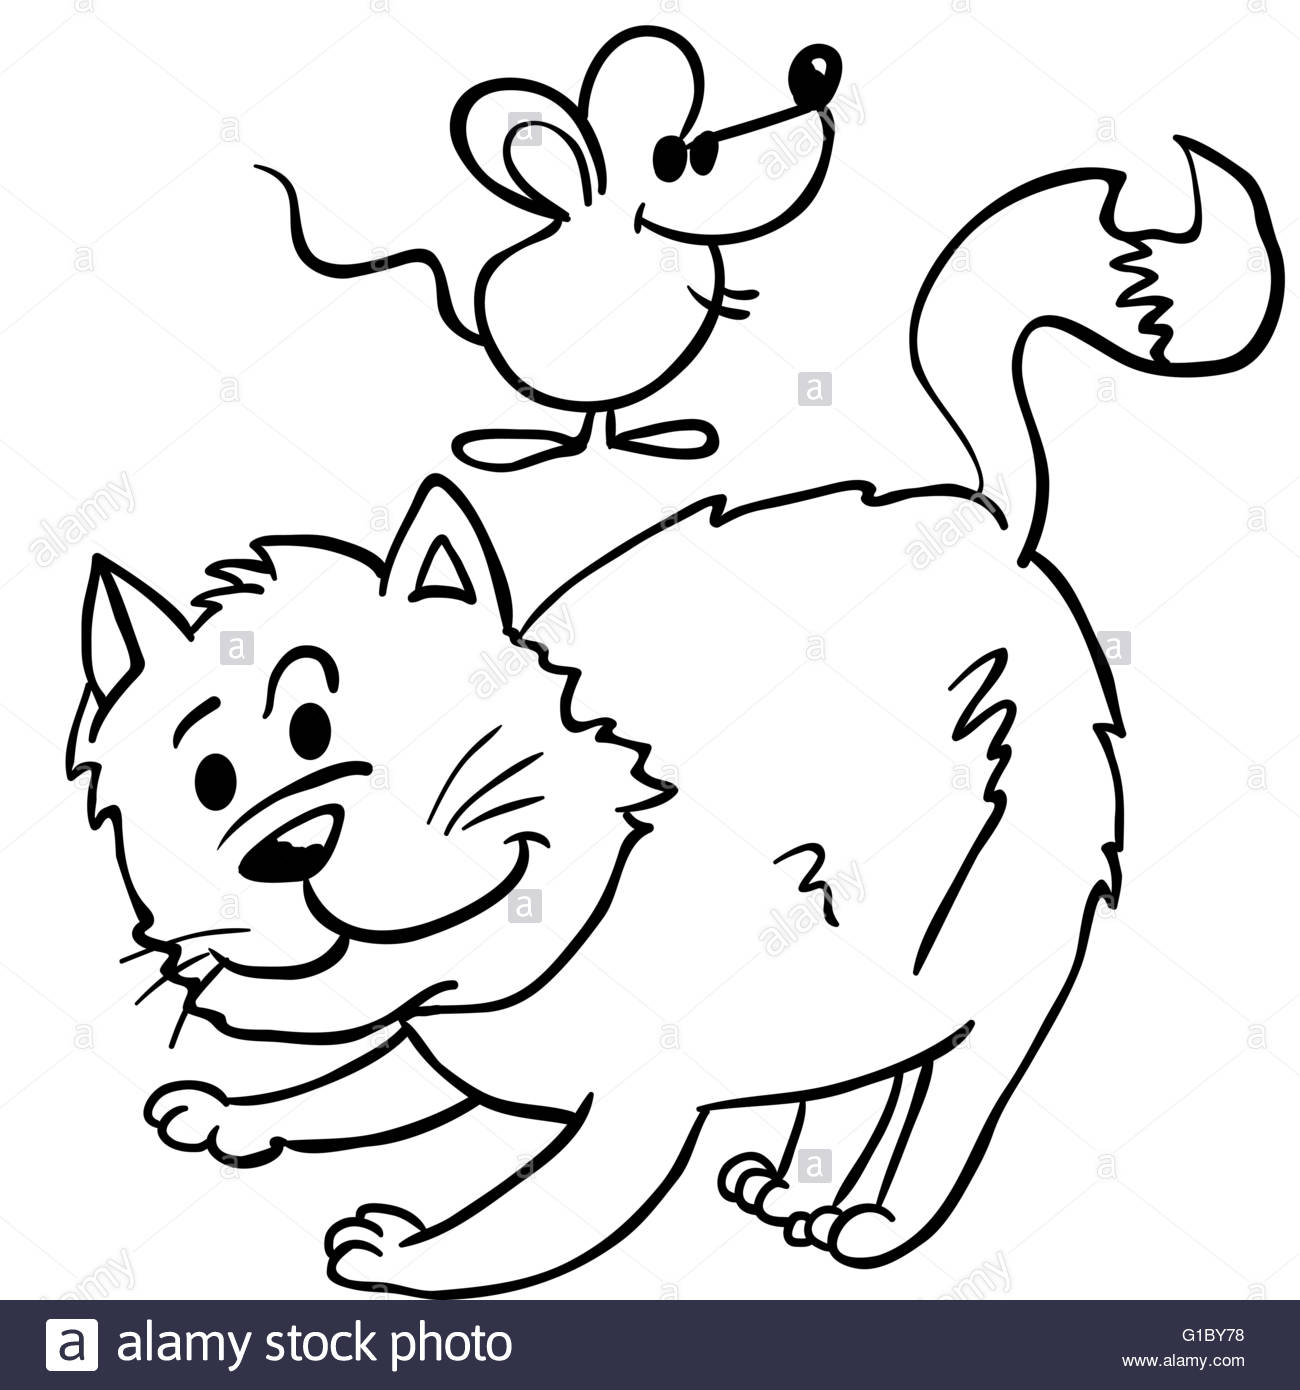 1300x1390 Simple Black And White Cat And Mouse Cartoon Illustration Stock